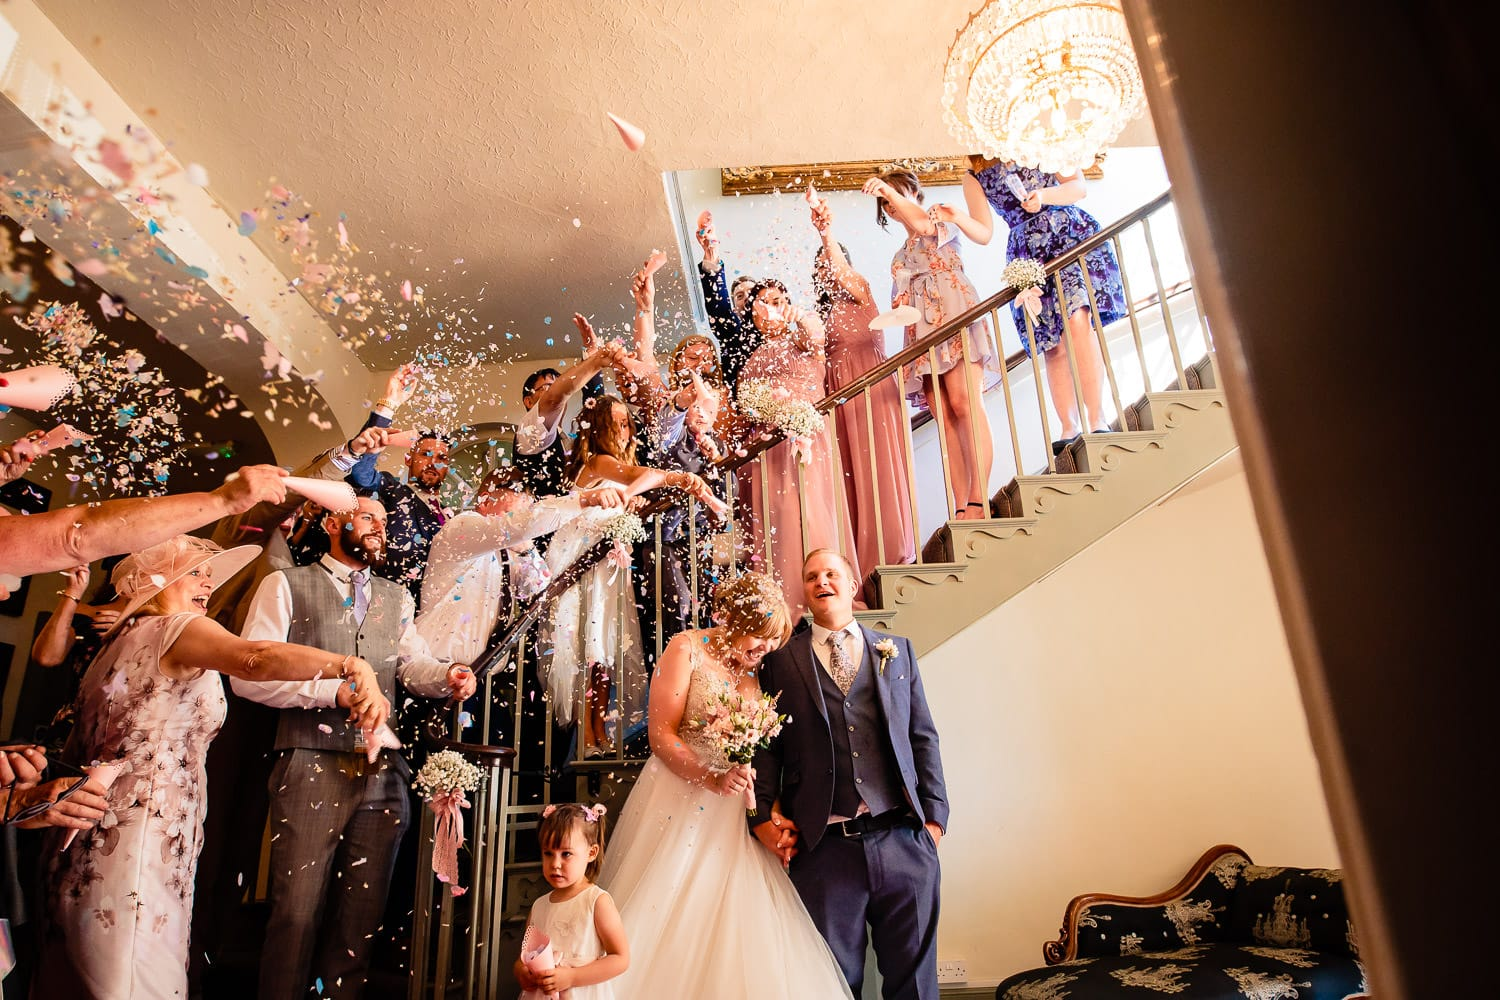 Warwick House Wedding Photography captures guests throwing confetti onto bride and groom